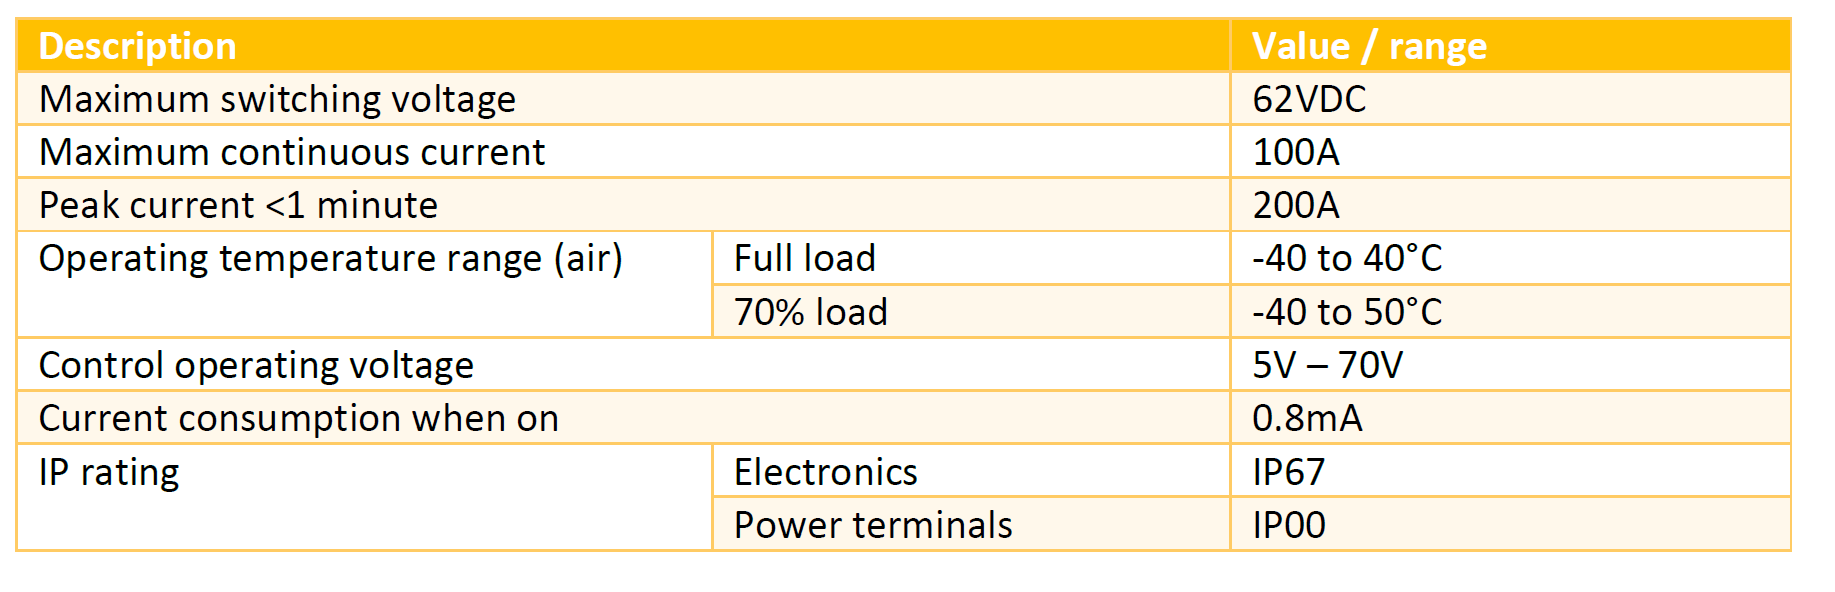 123powerswitch electrical specifications